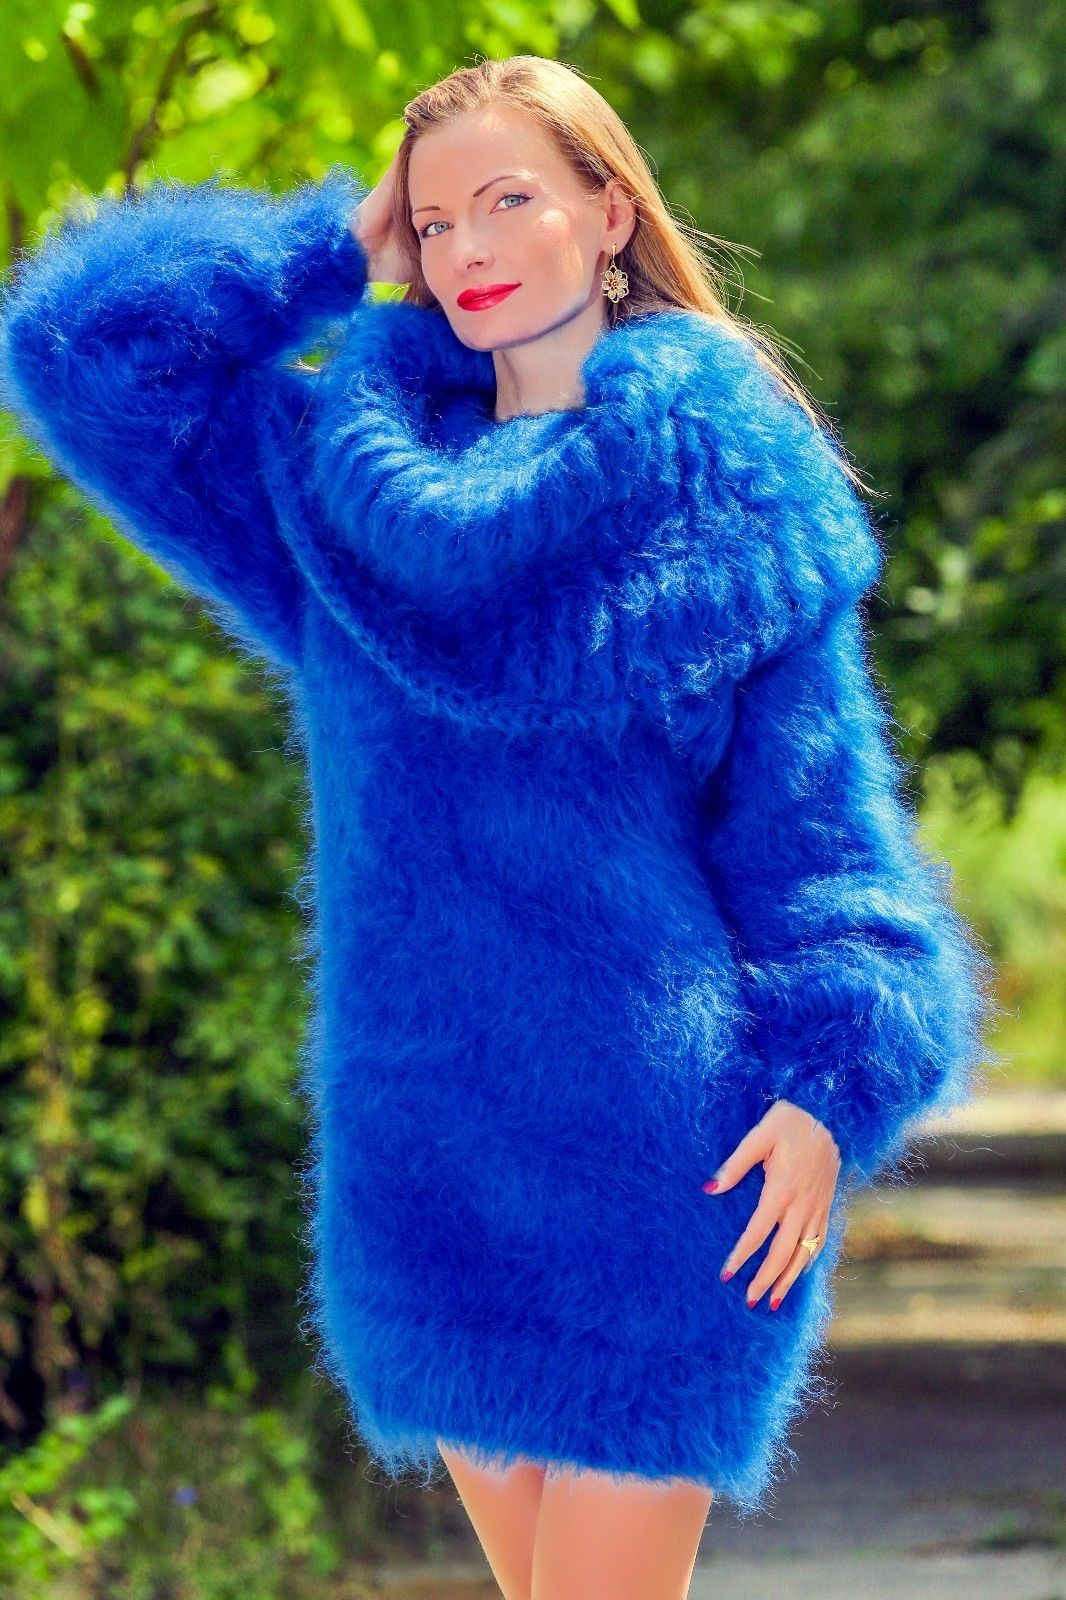 618c53eda5 Royal blue hand knitted soft   fuzzy mohair cowl neck sweater dress by  SuperTanya ®. Themohair